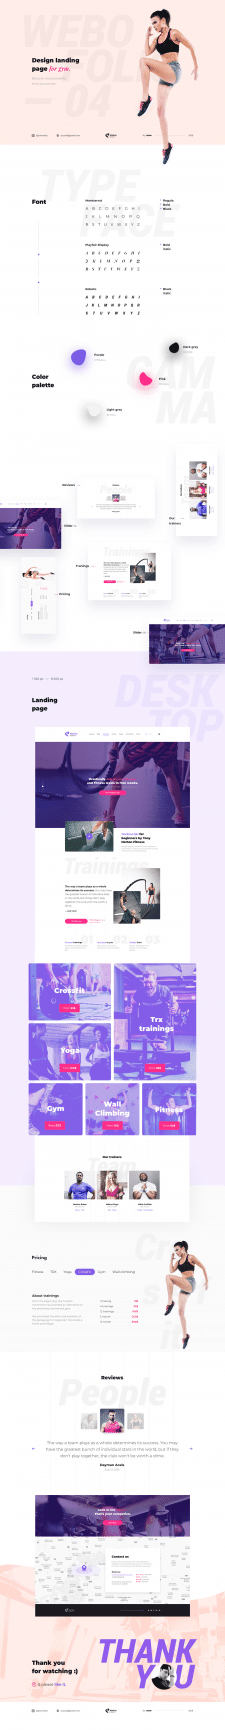 GYM. Native. Landing page.